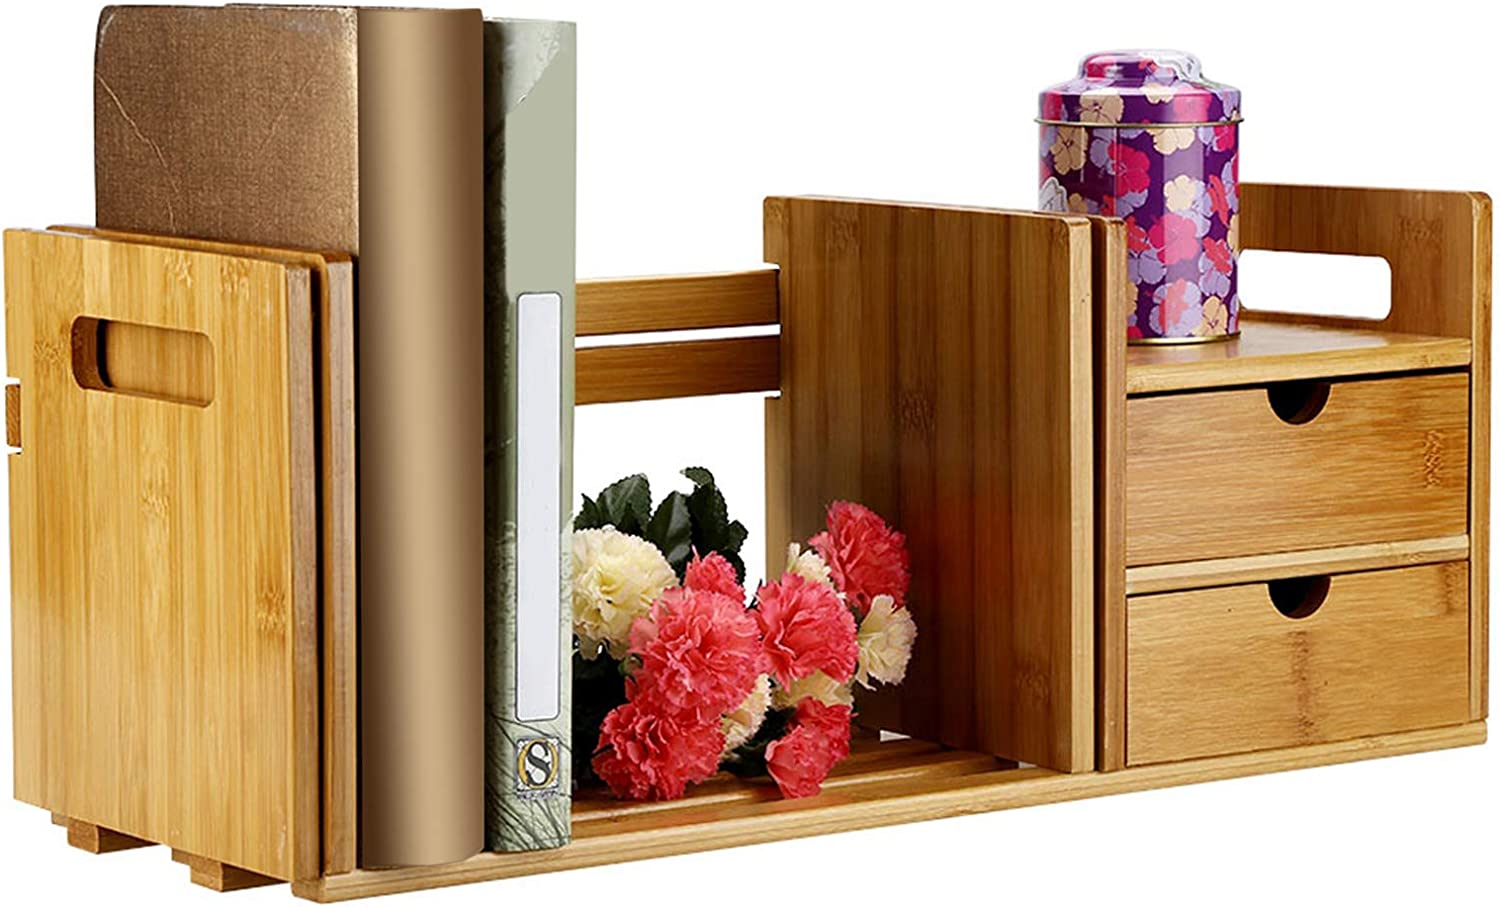 Cloudbox Tabletop Sale item Bookcase -Bamboo Desk Extendable Wood Ranking TOP18